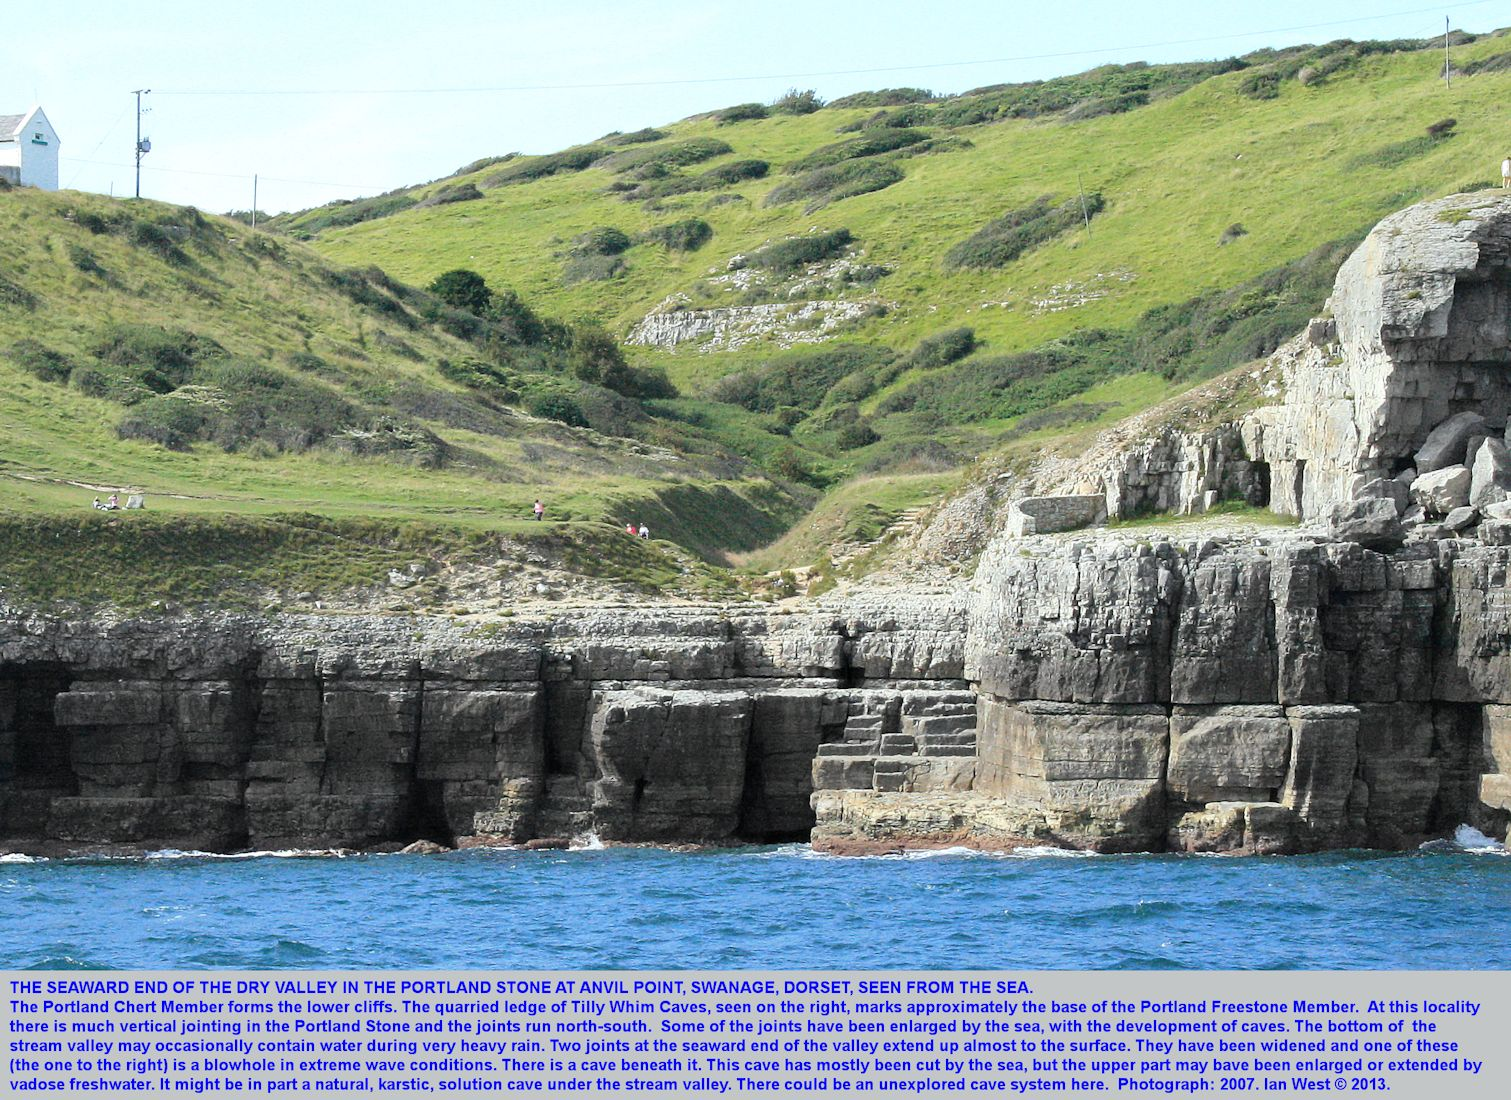 Jointing and caves in the Portland Stone at the dry valley, Anvil Point, near Swanage, Dorset, as seen from the sea